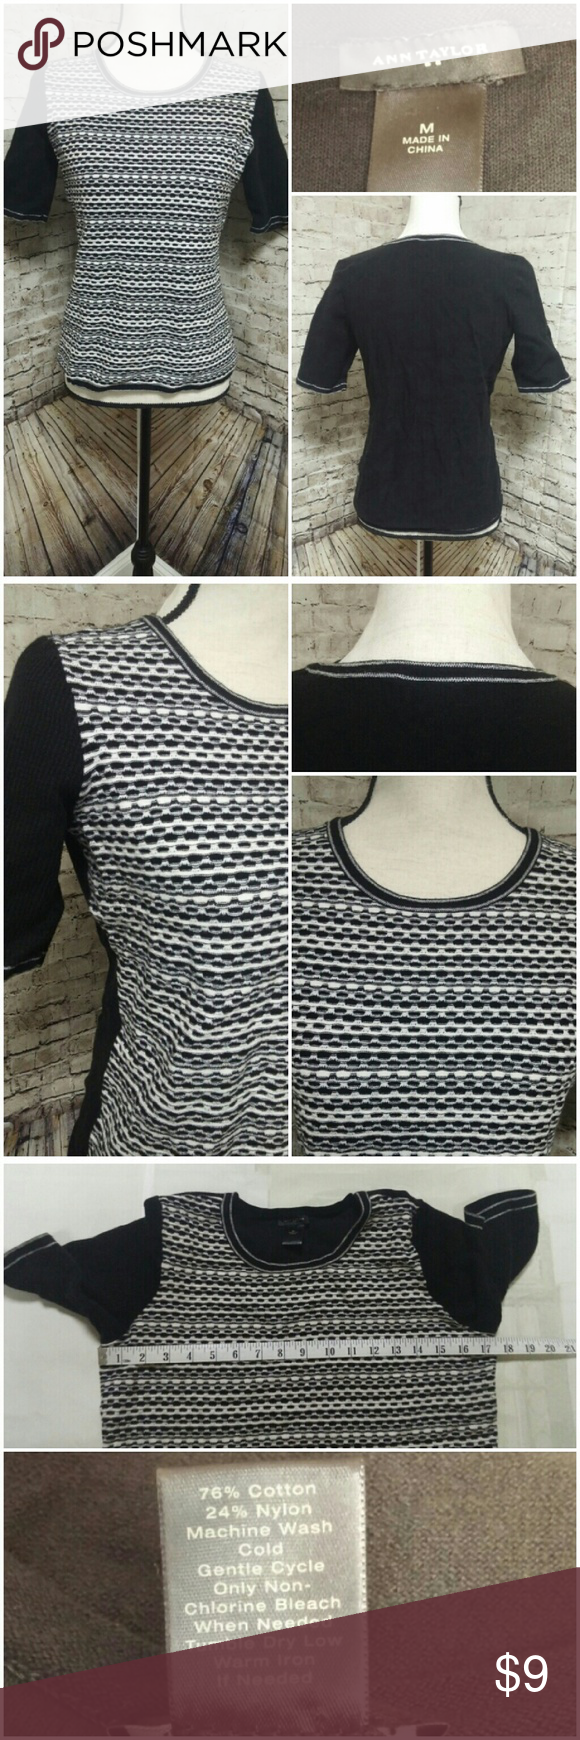 Ann Taylor Sweater Brand: Ann Taylor  Size: Medium  Color: Black and White  Closures: None. Pullover style.  Flaws: None  See listing for pictures of measurements.  Inspections? I check all items for flaws and include any in the listing. If I have missed any, it is by mistake.  Thank you for looking at my closet! Ann Taylor Sweaters Crew & Scoop Necks